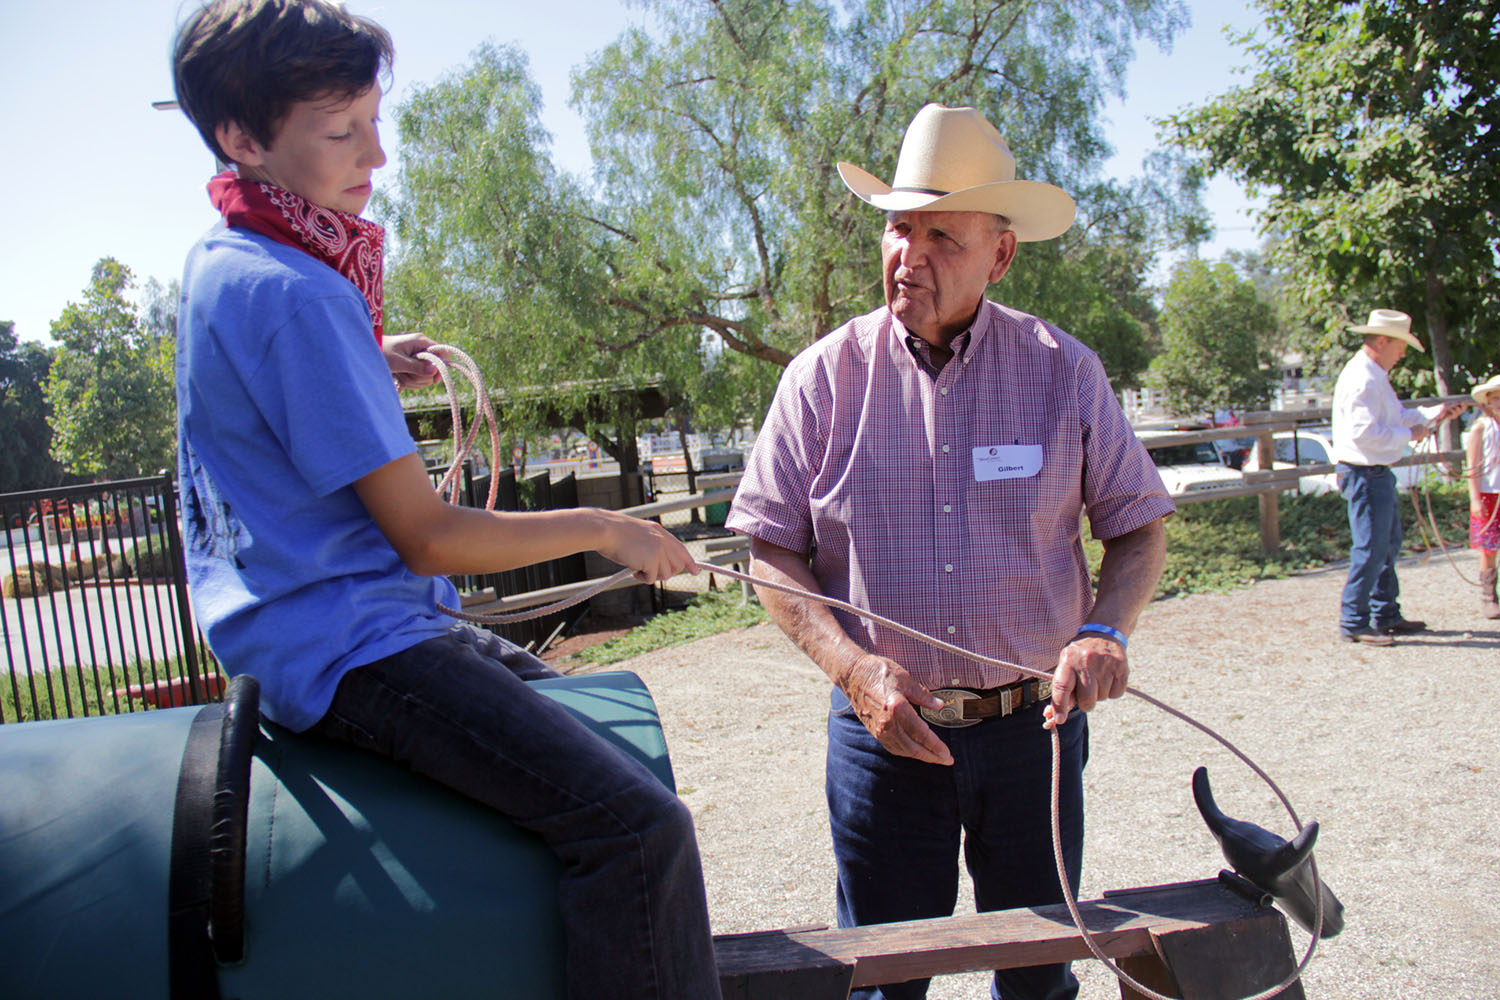 After successfully getting his lasso around the fake steer's horns, Soren Olsen admires his throwing skills while Gilbert Aguiree, executive vice president of ranch operations at Rancho Mission Viejo, offers words of praise. Photo: Shawn Raymundo